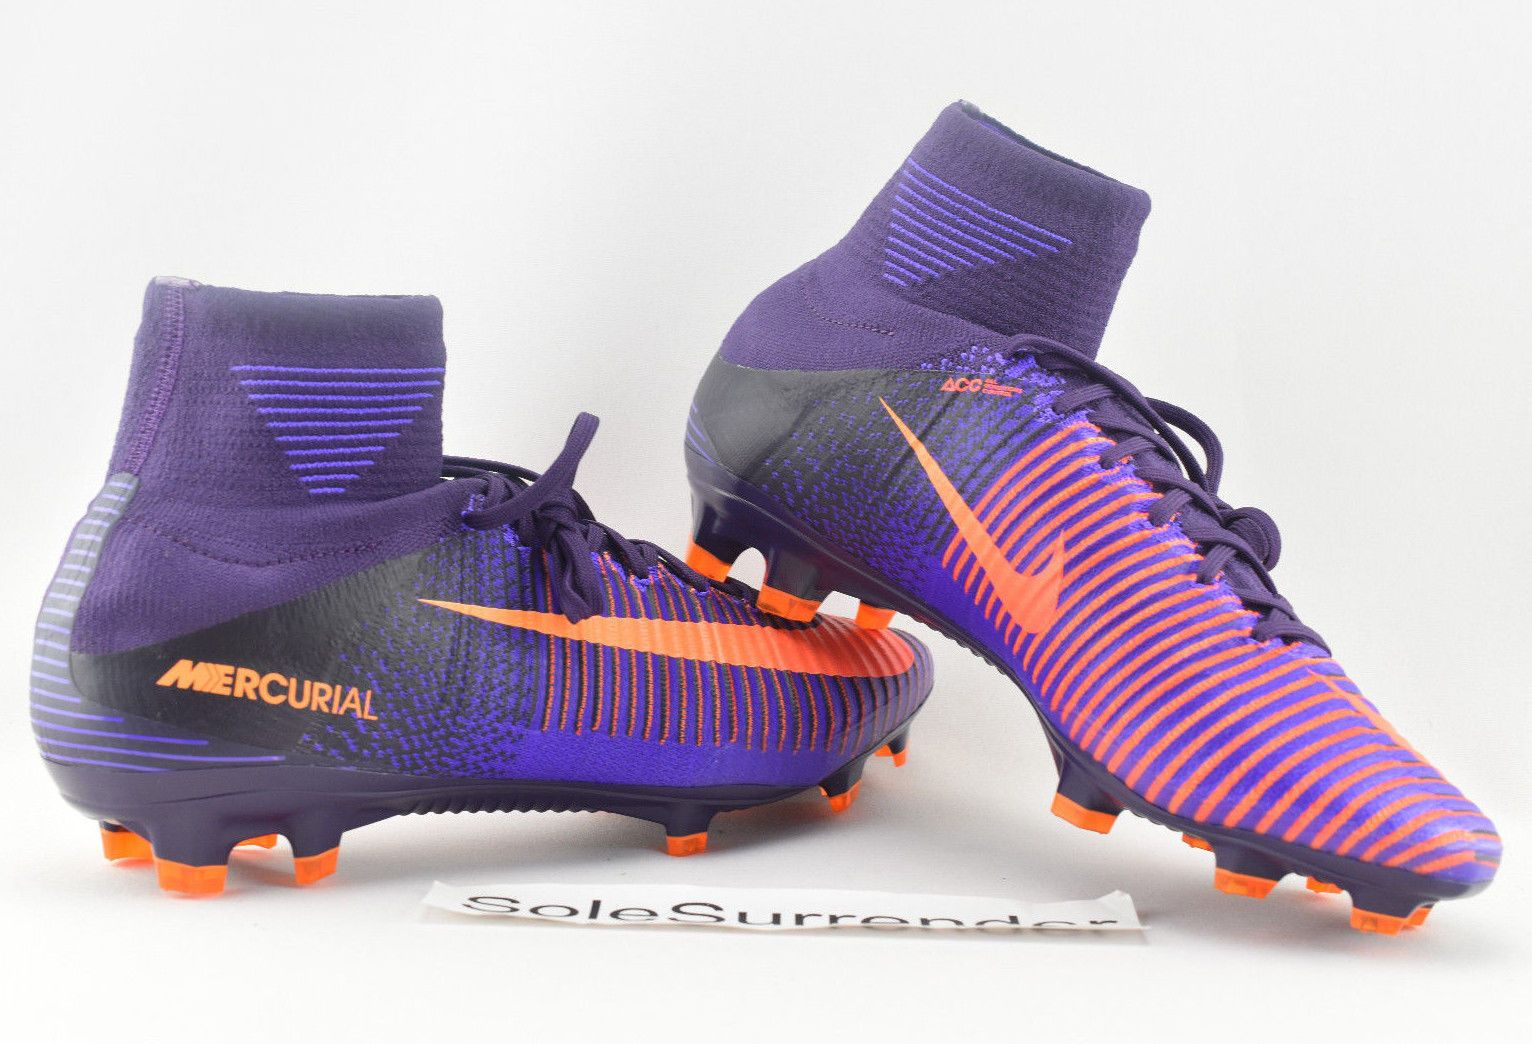 401b99809a8d Nike Mercurial Superfly V FG -CHOOSE SIZE- 831940-585 Spikes Boots Black  Orange